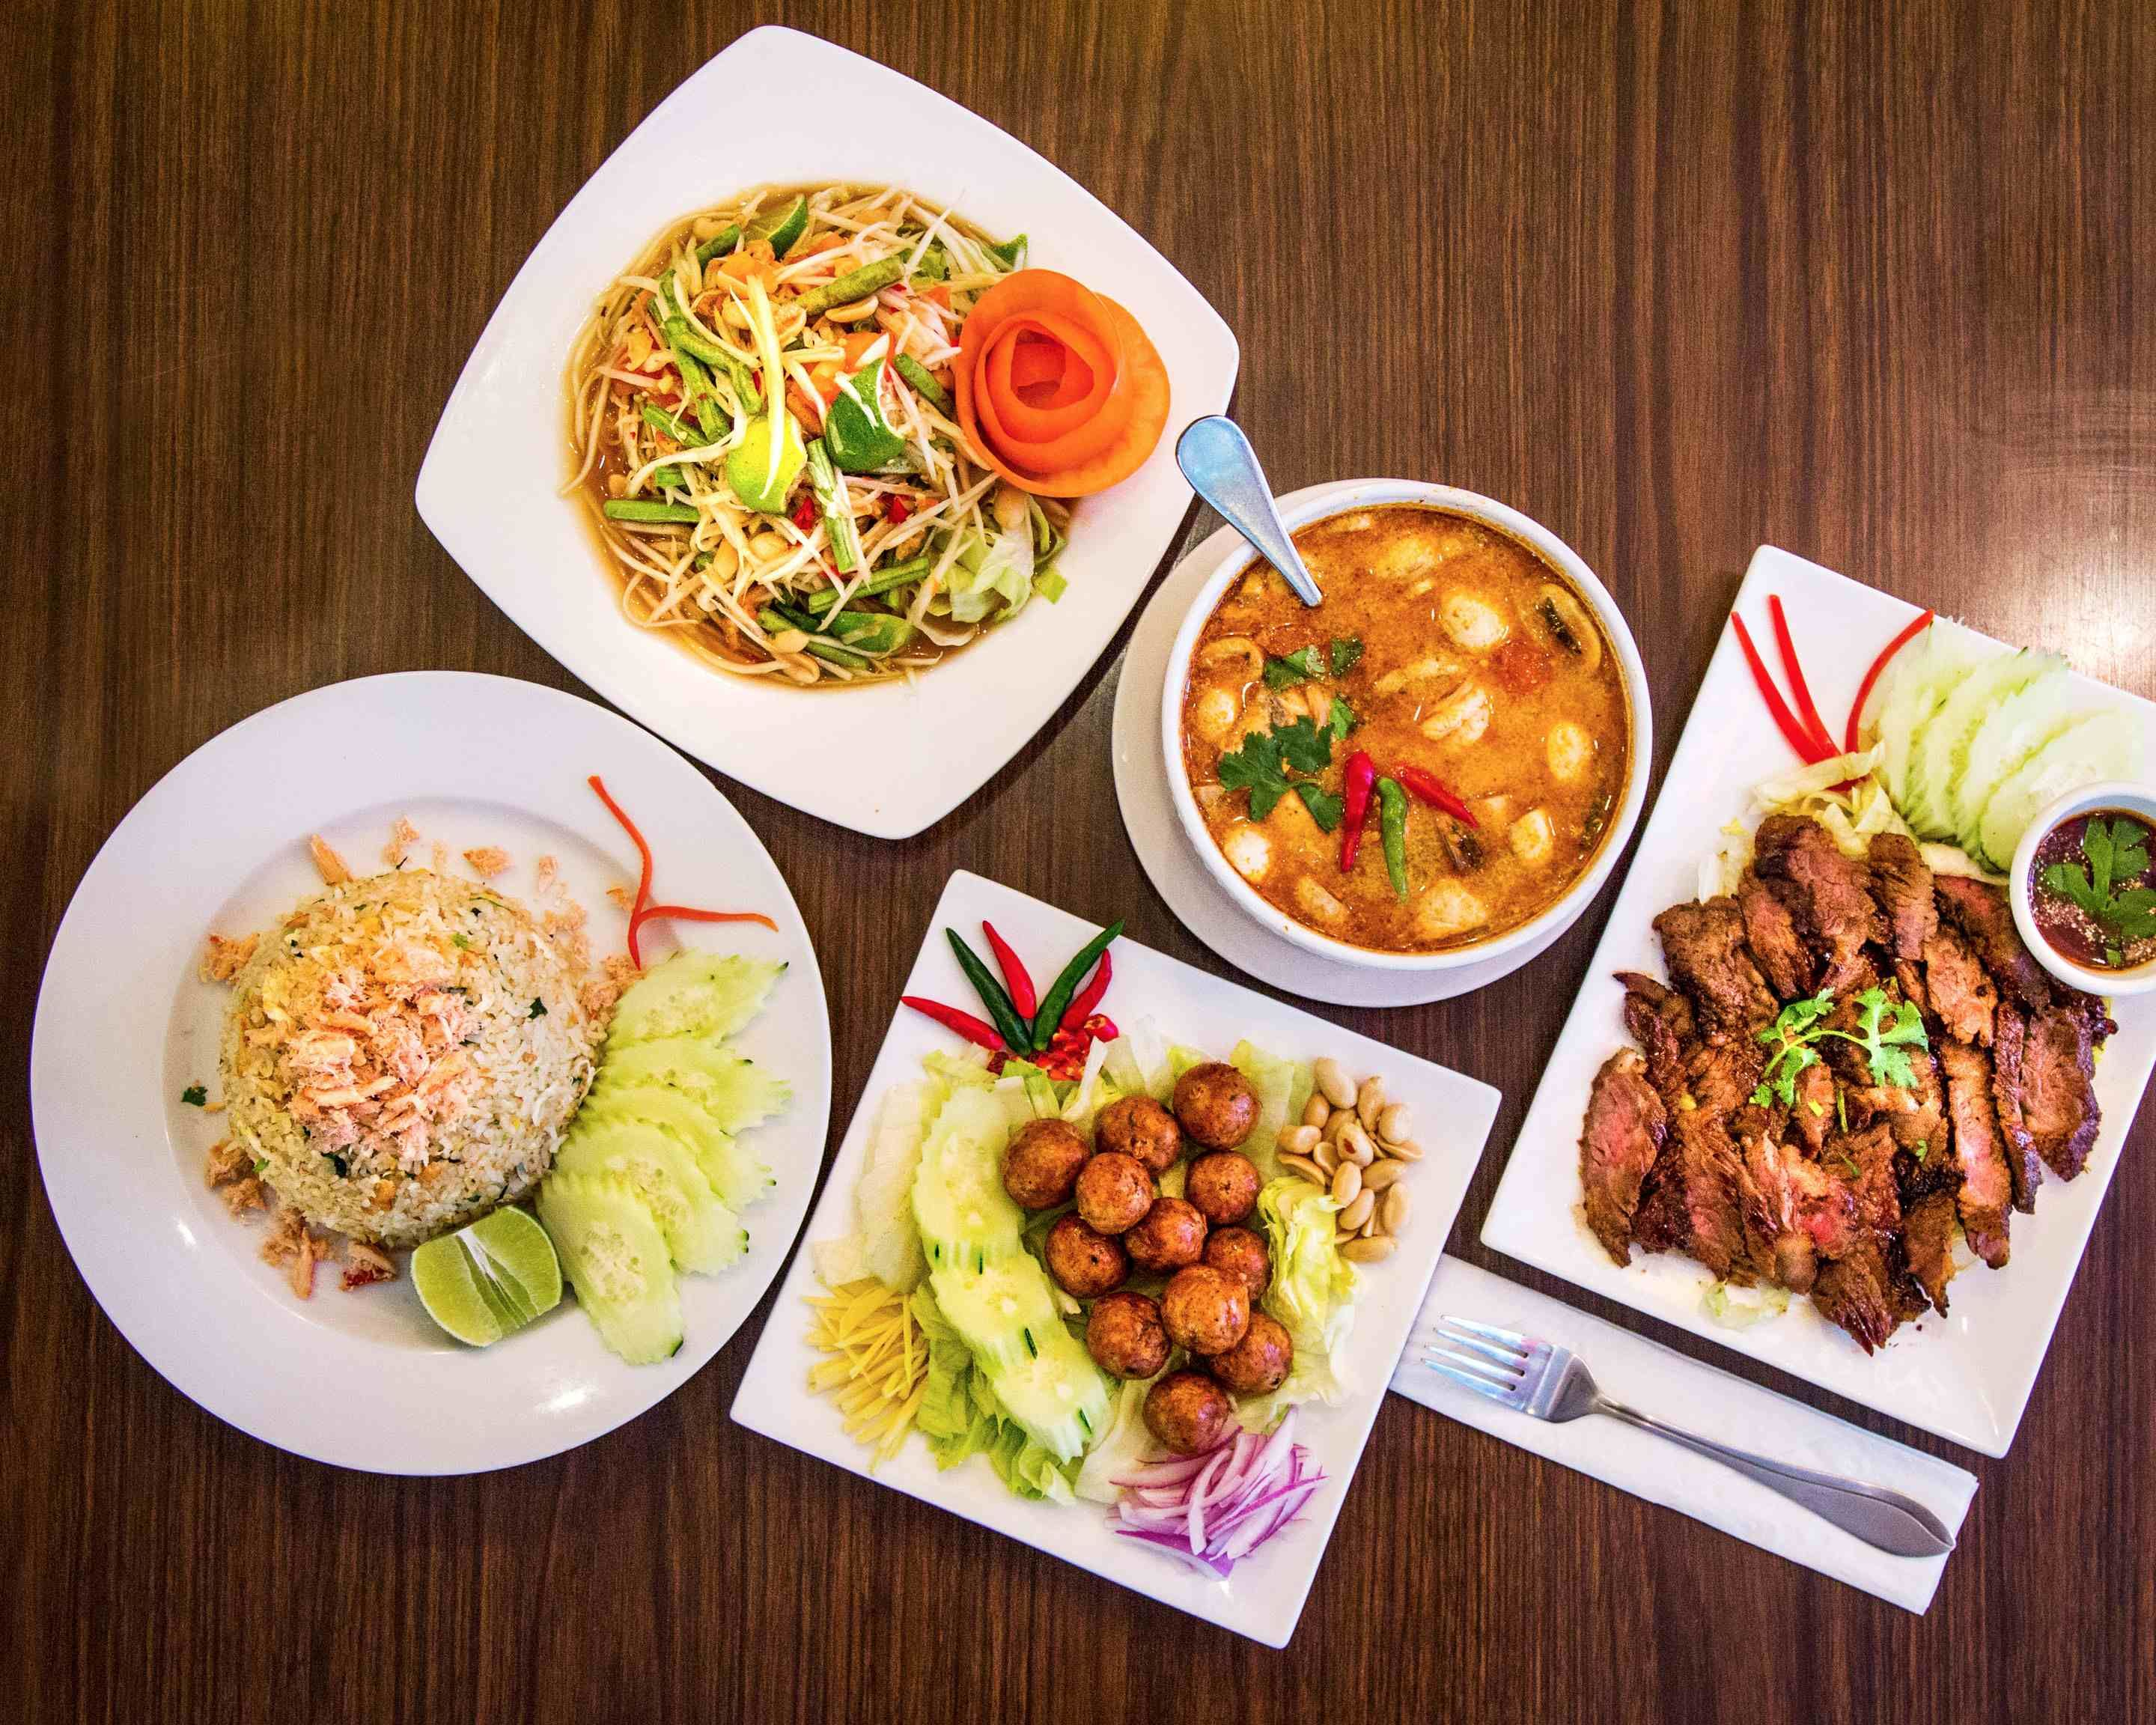 Order Paula S Thai Kitchen Delivery Online Chicago Menu Prices Uber Eats